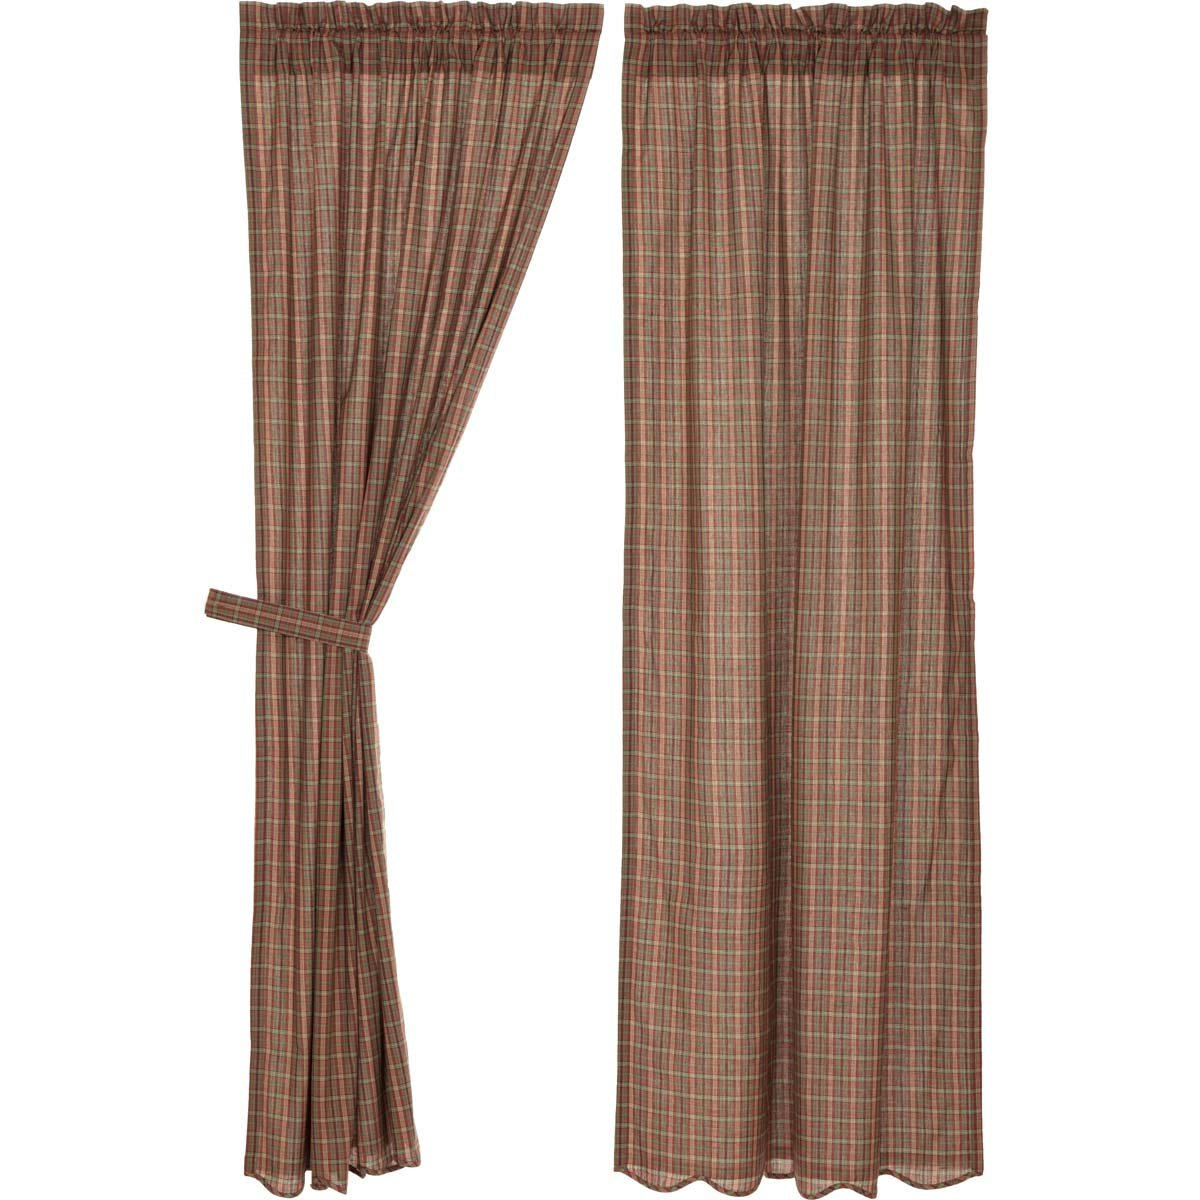 Vhc Brands Curtains